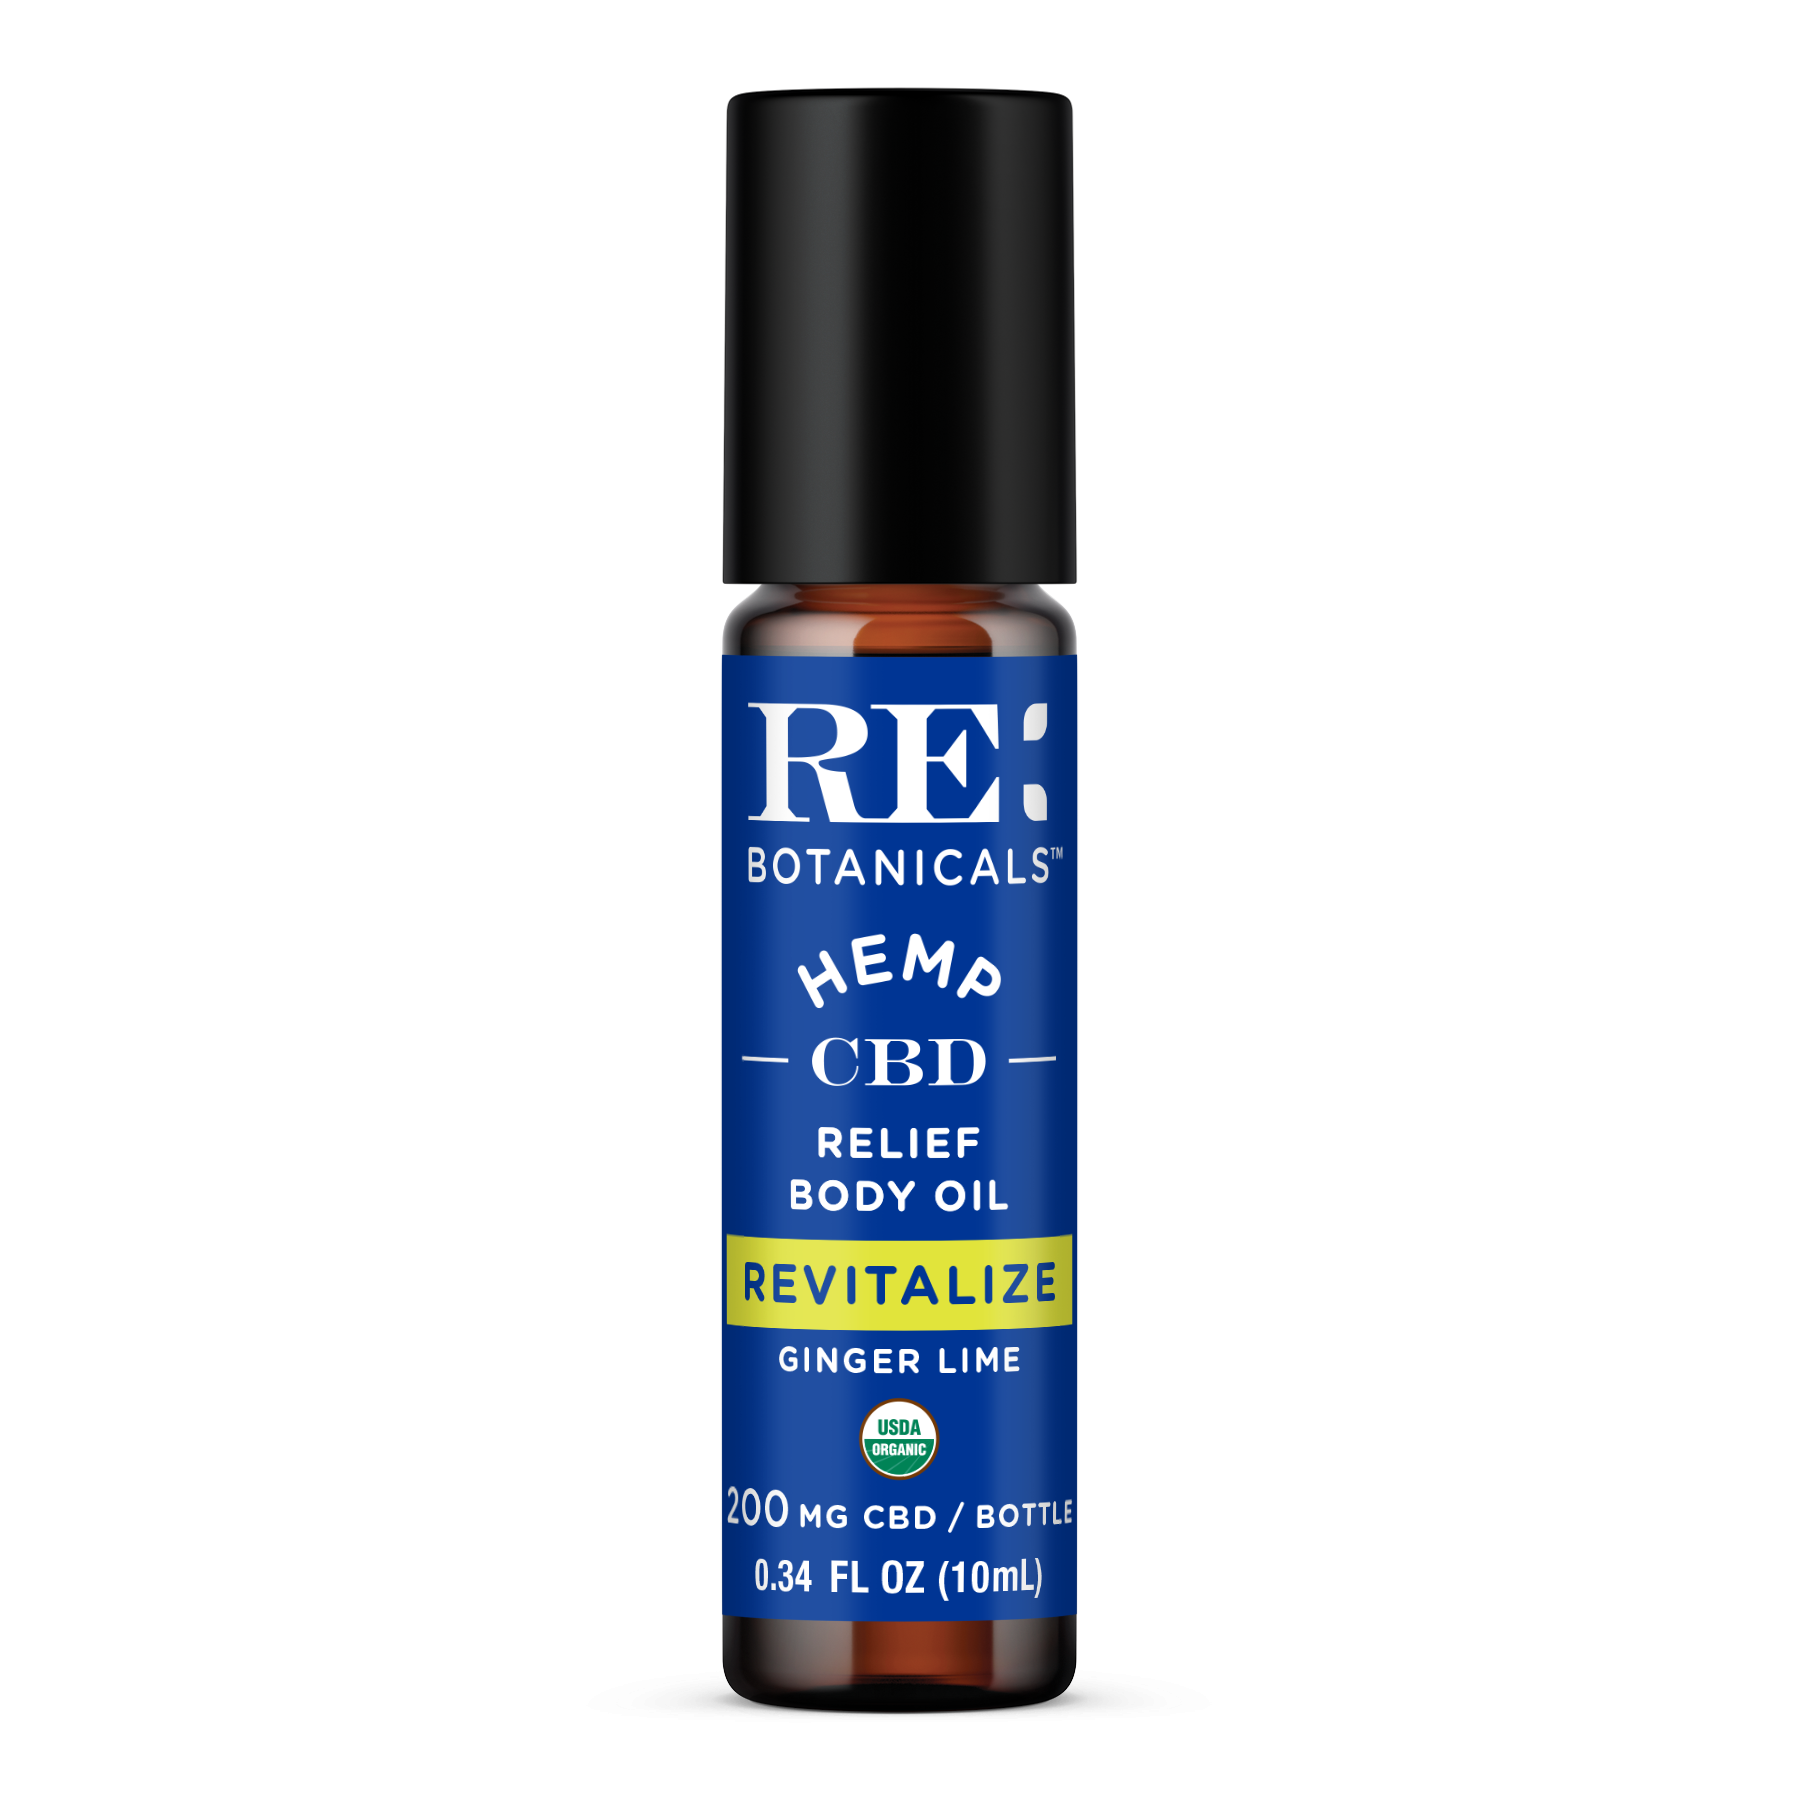 RE Botanicals: Revitalize - Ginger Lime Relief Body Oil (200mg)